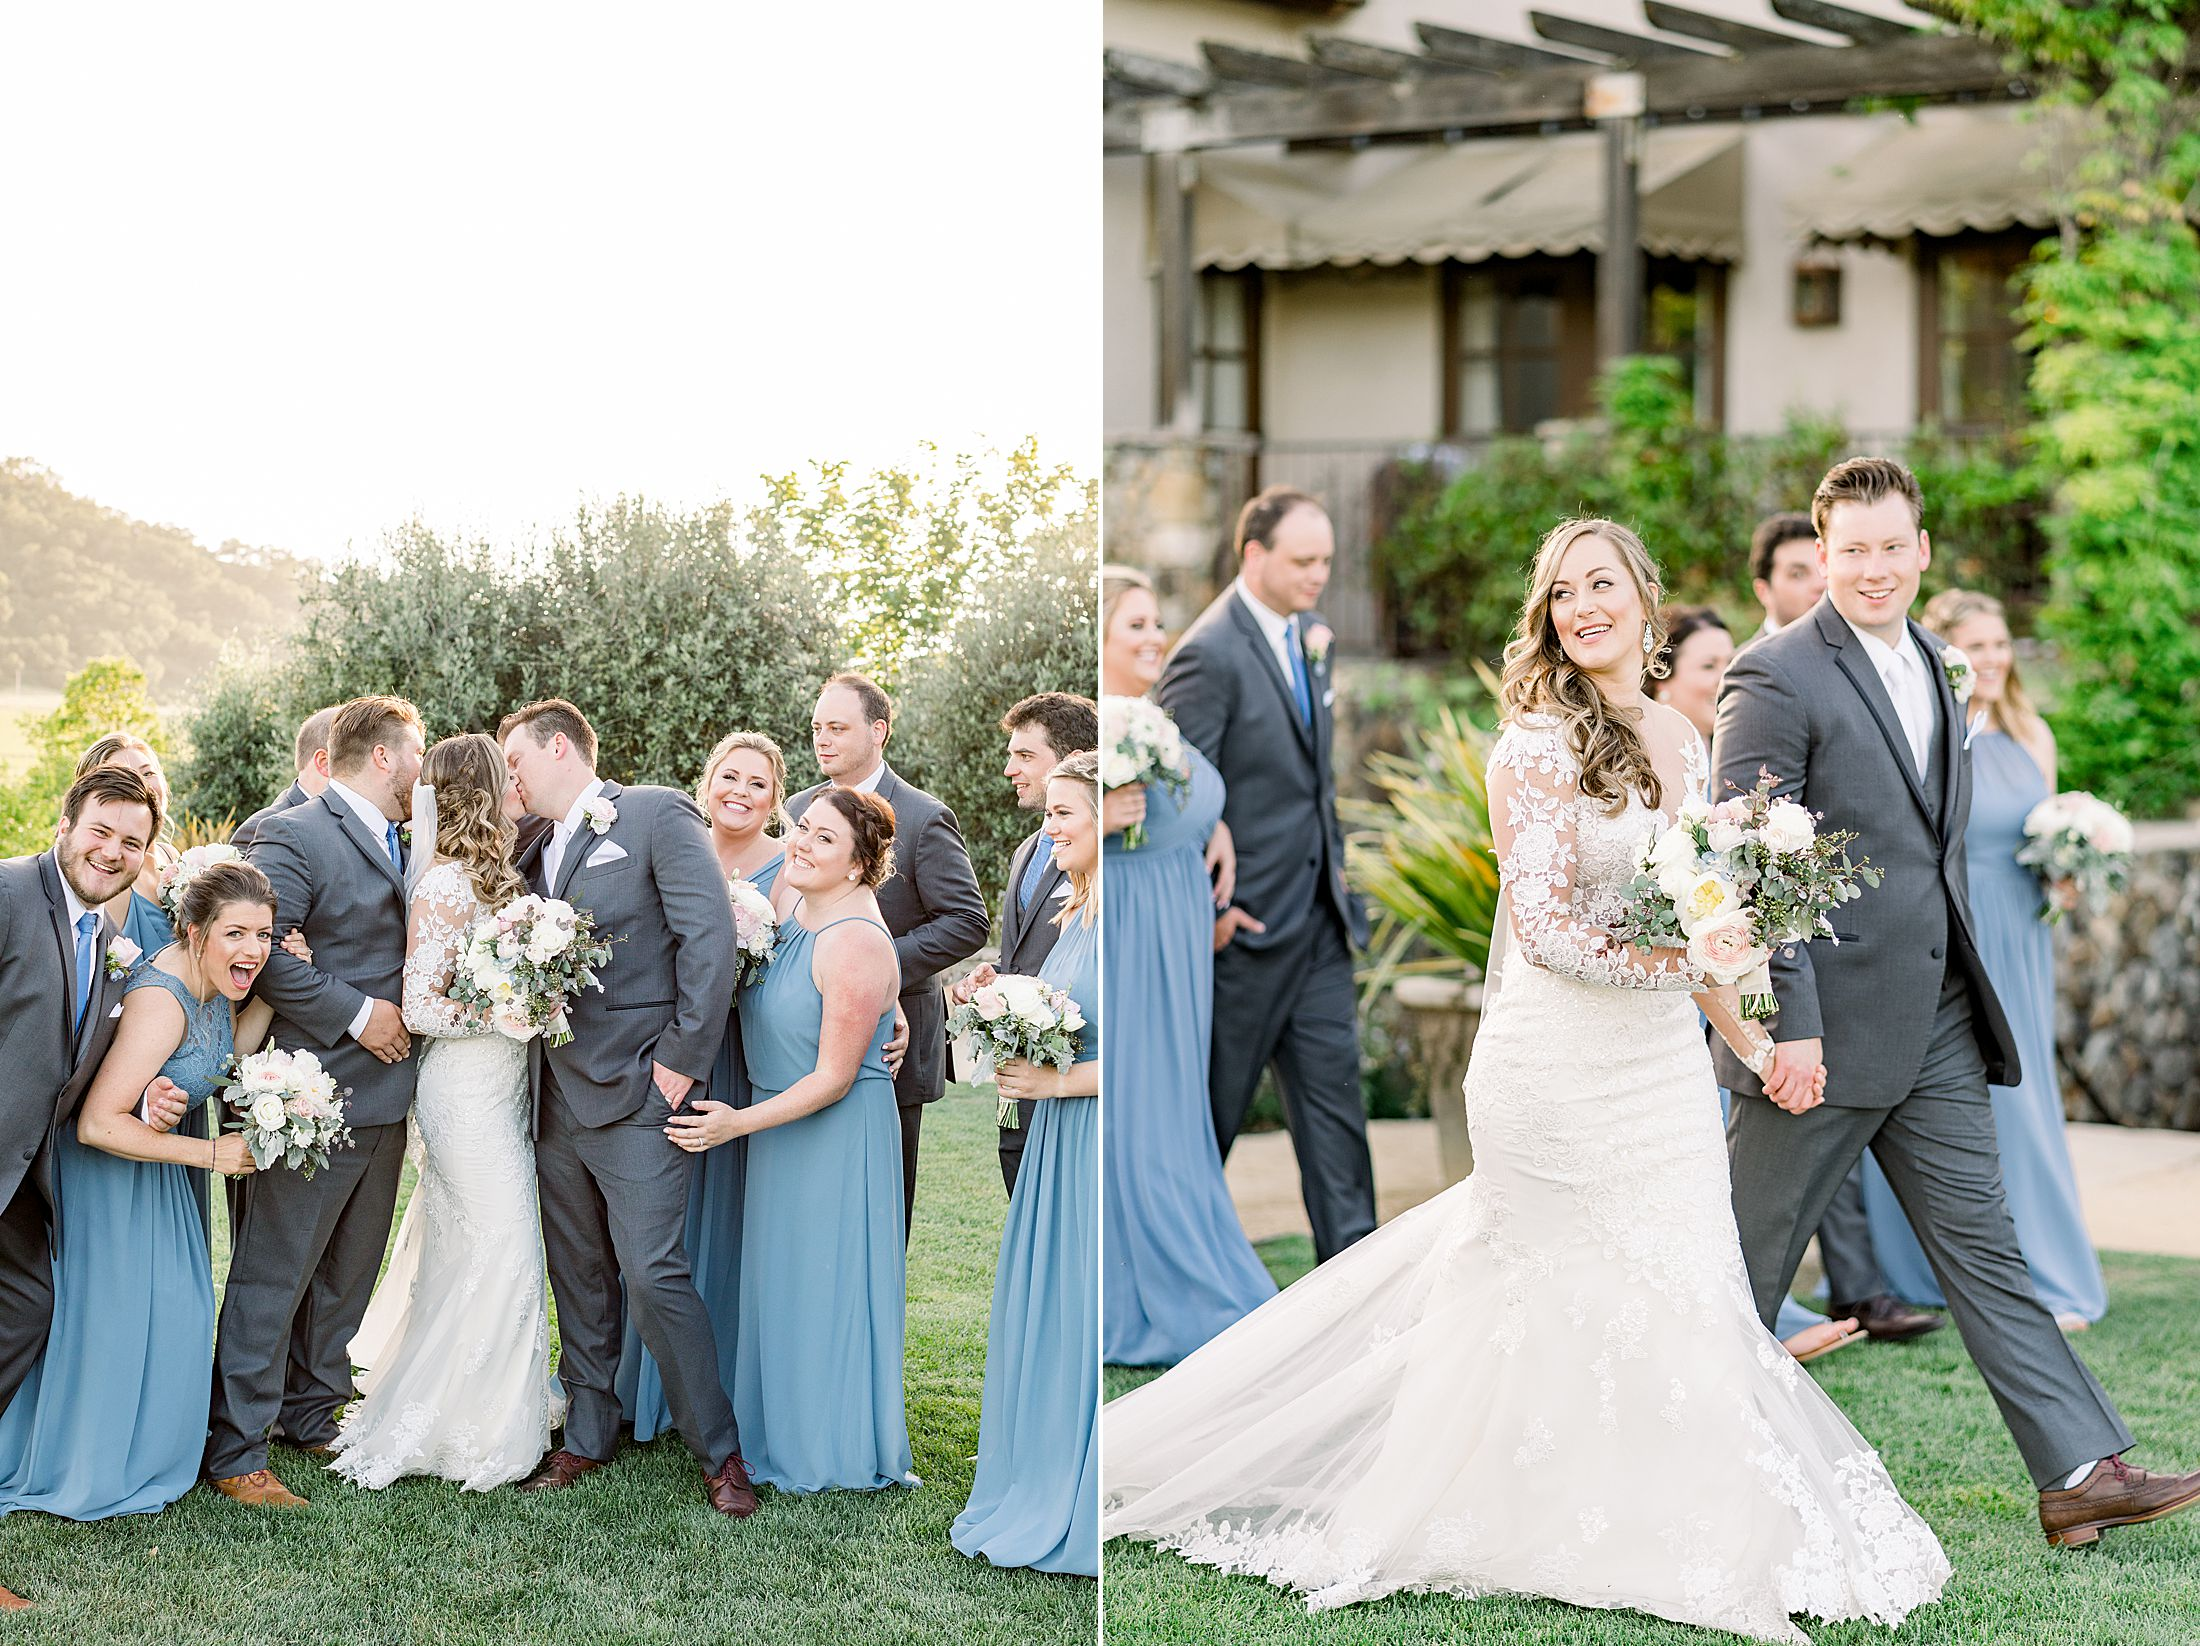 Clos LaChance Winery Wedding - Ashley Baumgartner - Kat & Kurt - Morgan Hill Wedding - Winery Wedding - Bay Area Photographer - Sacramento Wedding Photographer_0033.jpg